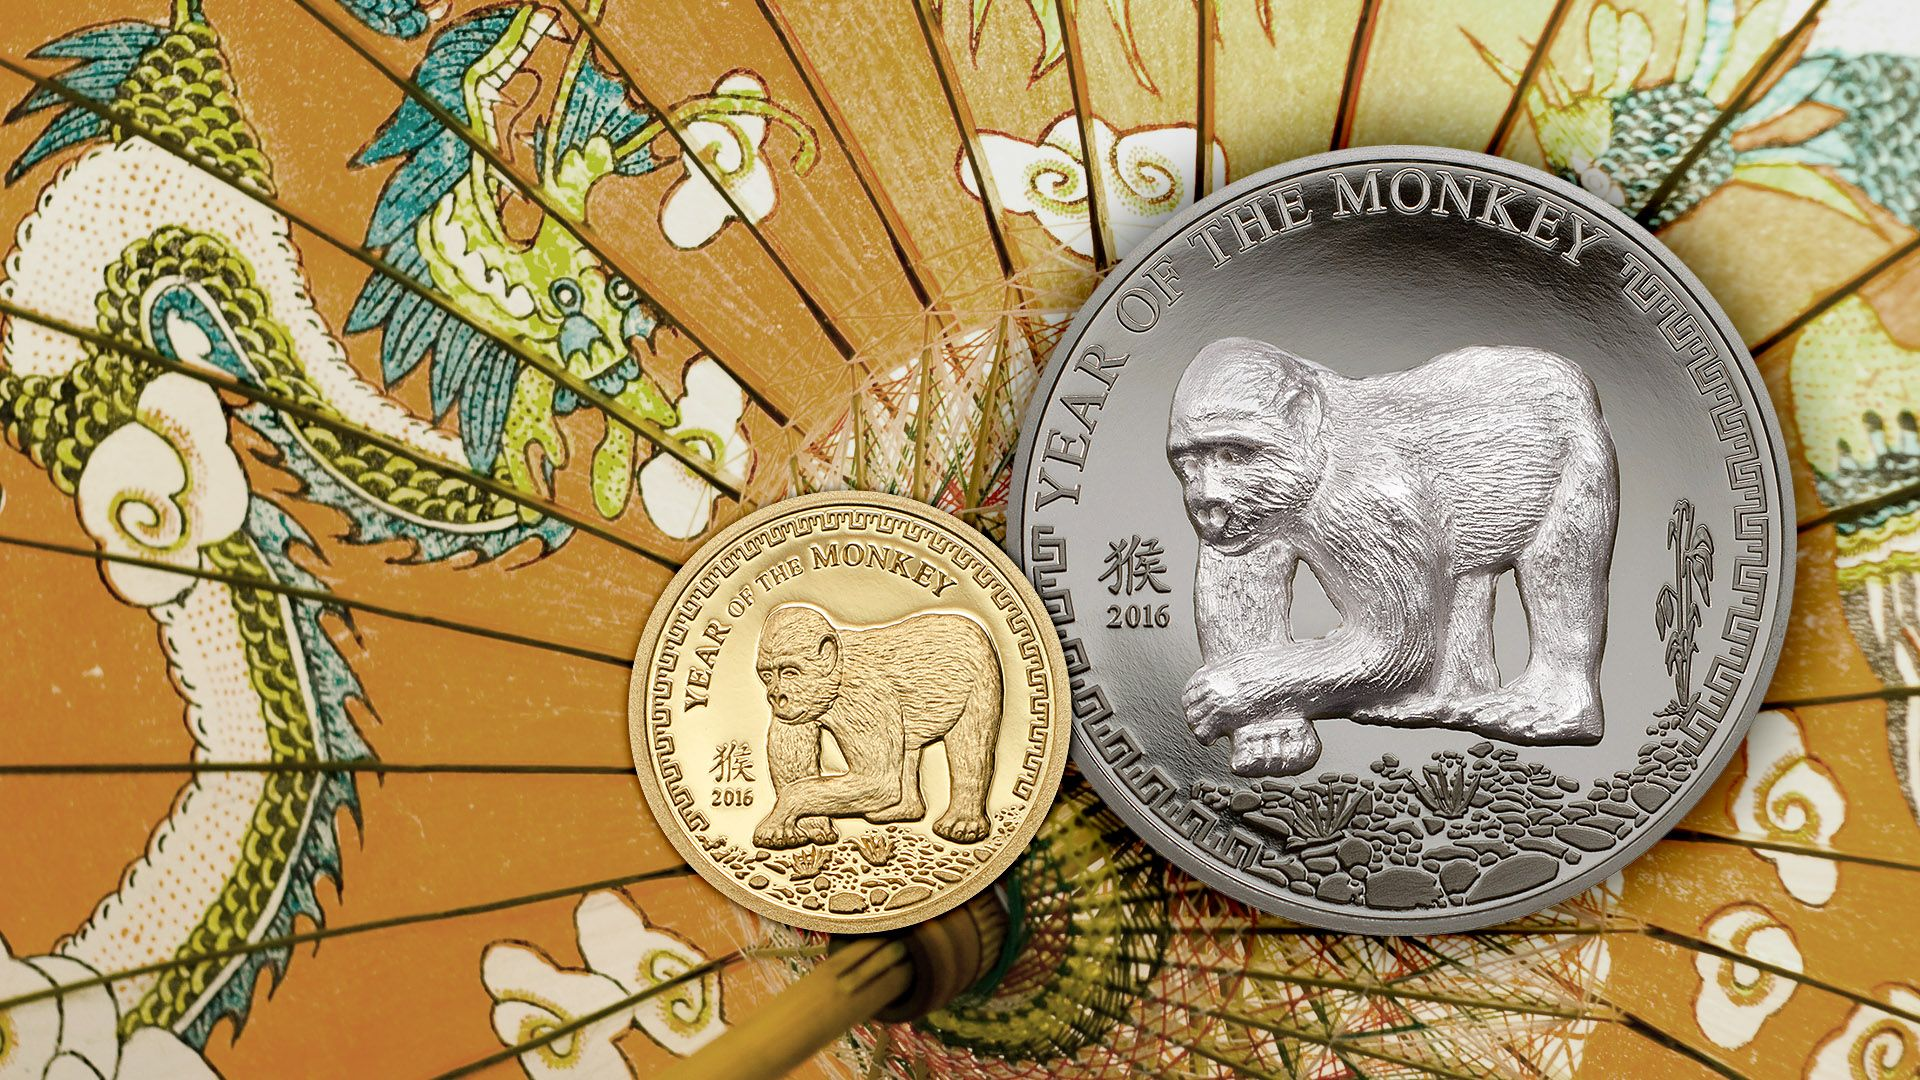 2016 Lunar Year Series Year of the Monkey coins